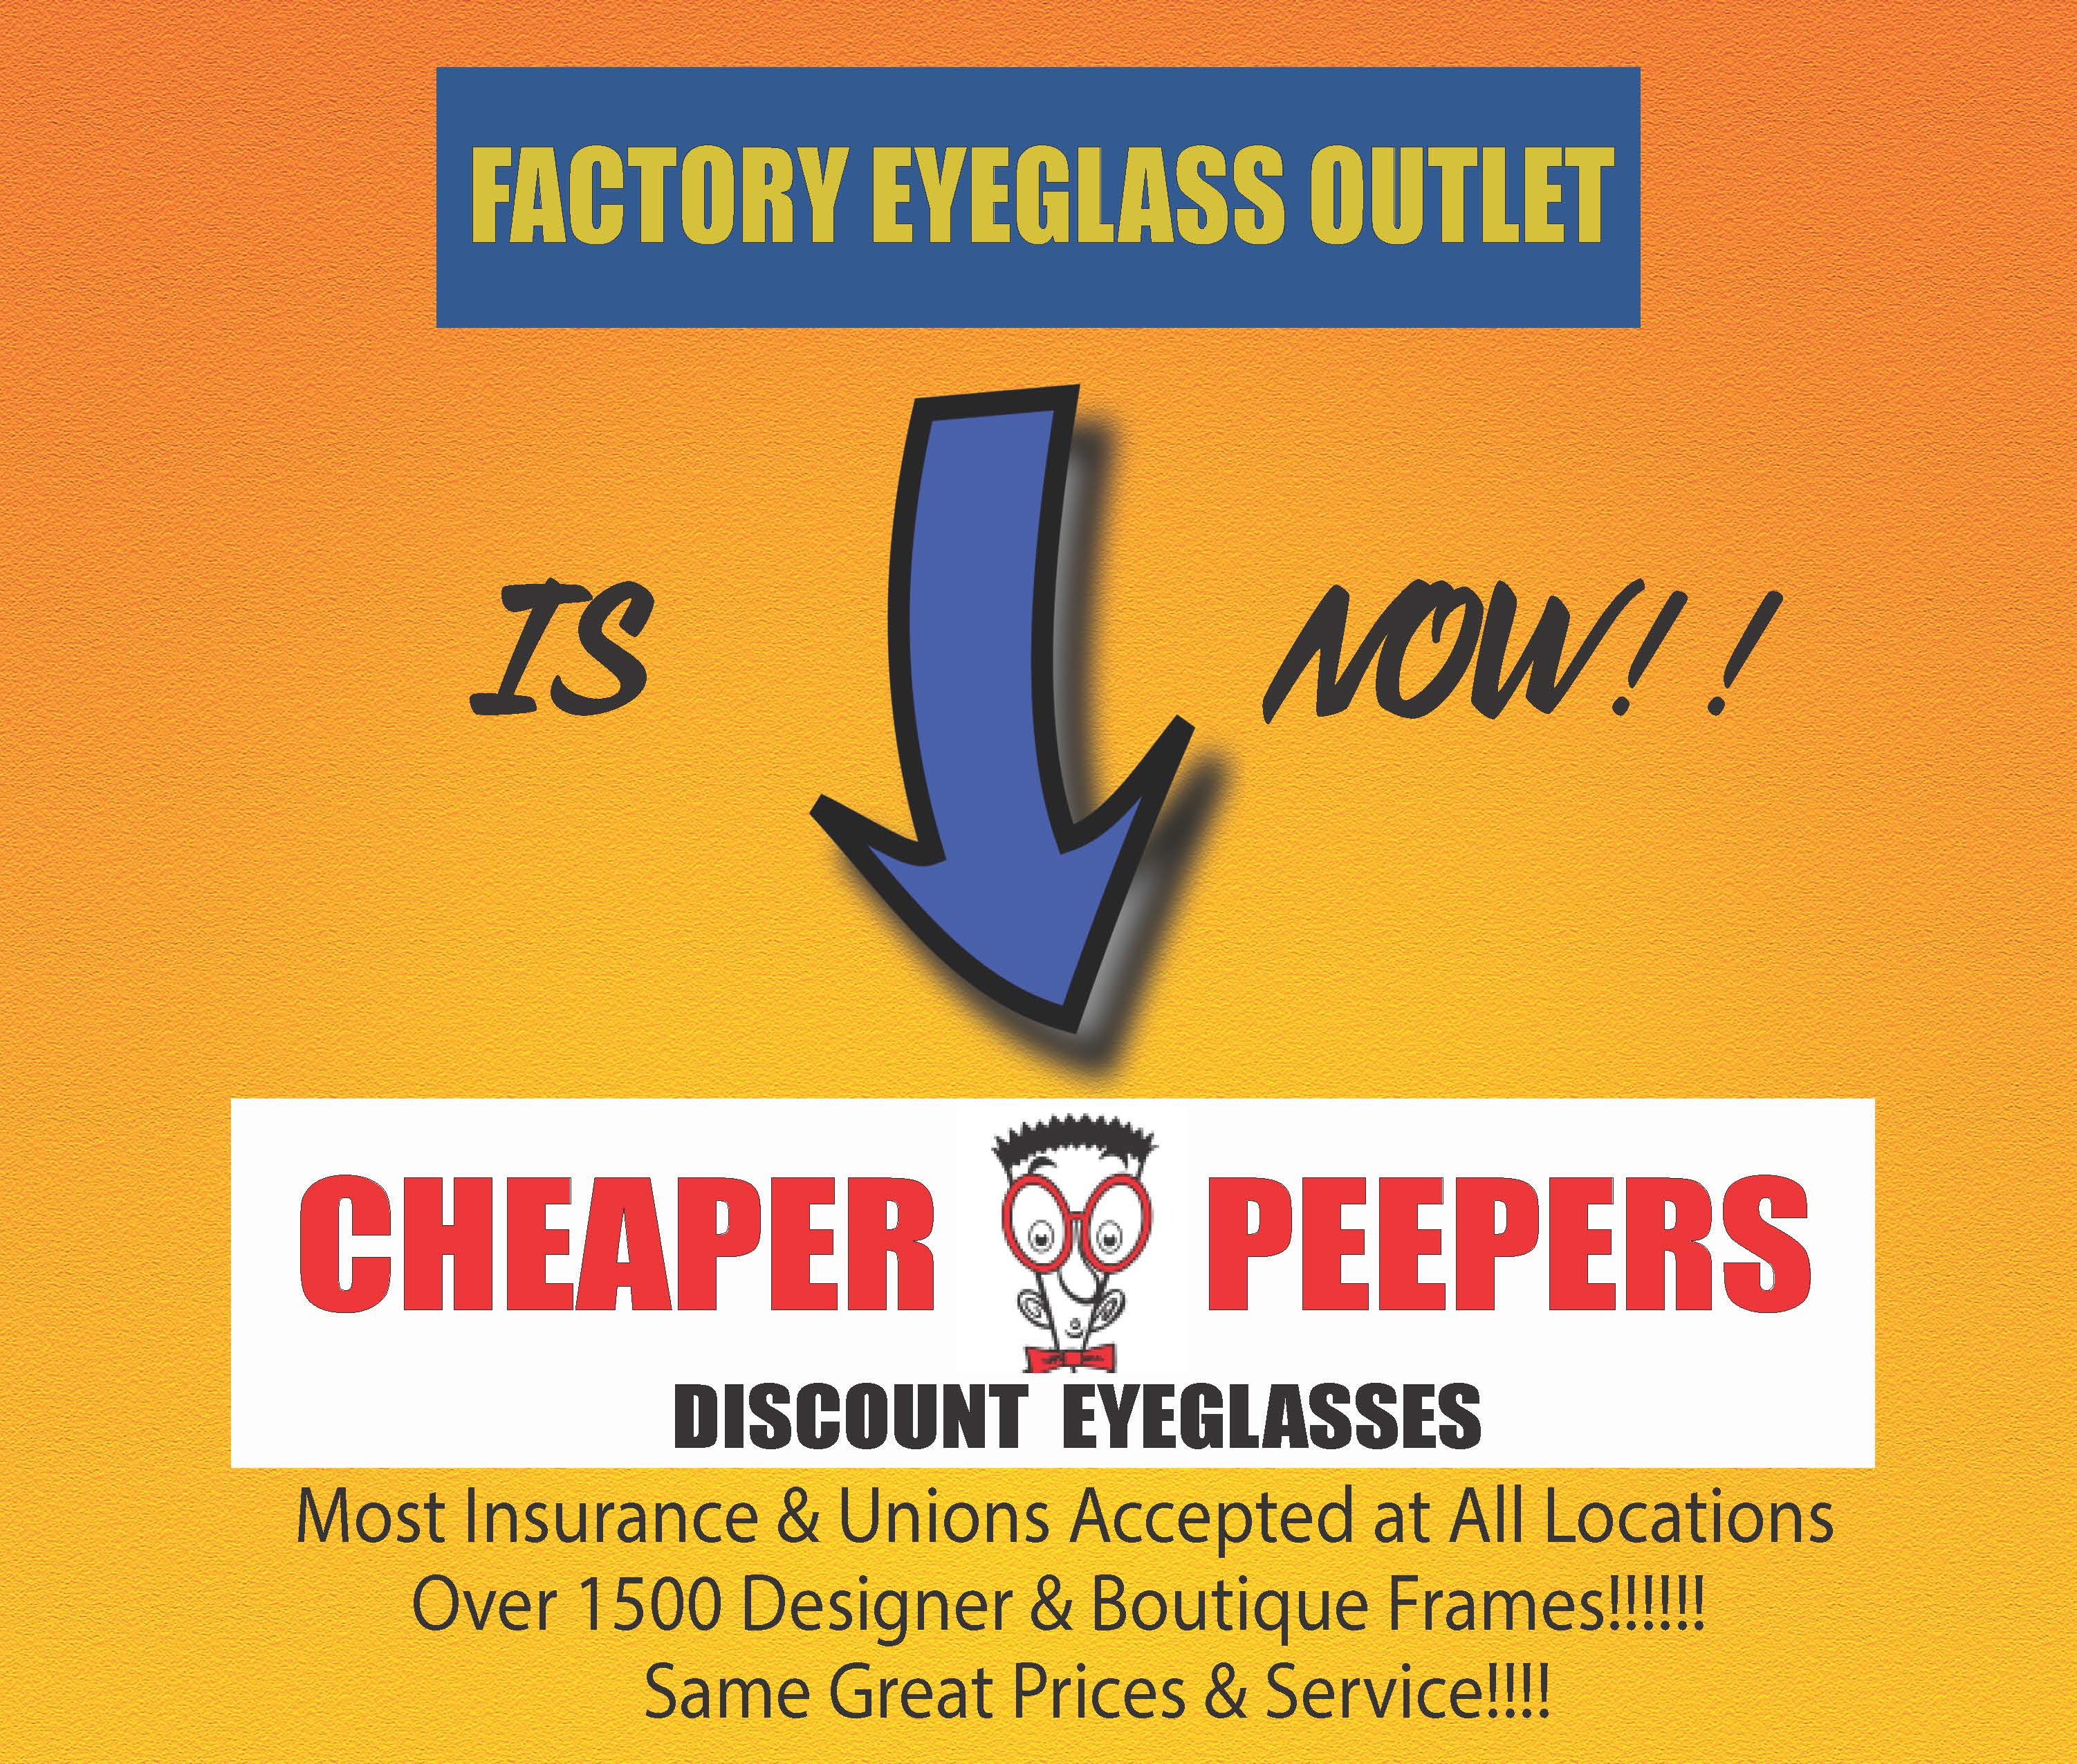 discount designer frames odal  All locations contain